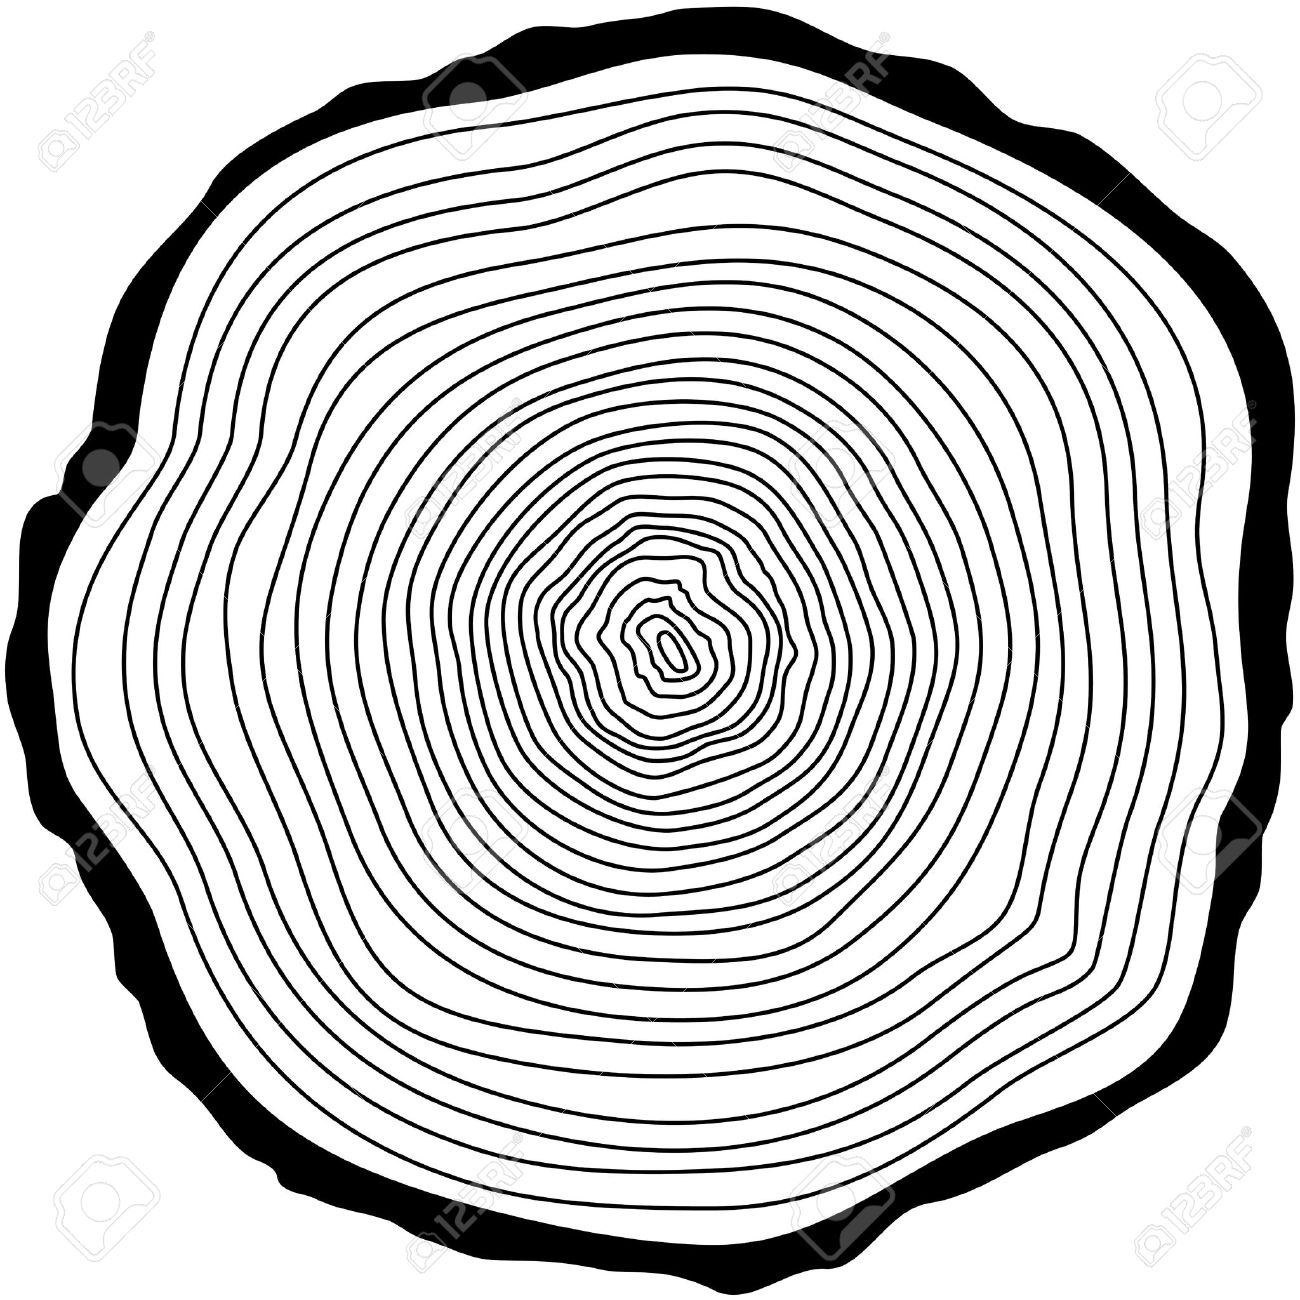 do verde of wood blog kind turntable sound be ponderosa the blue like on palo what new tree uncategorized curious think record you pine might a rings or aaec high